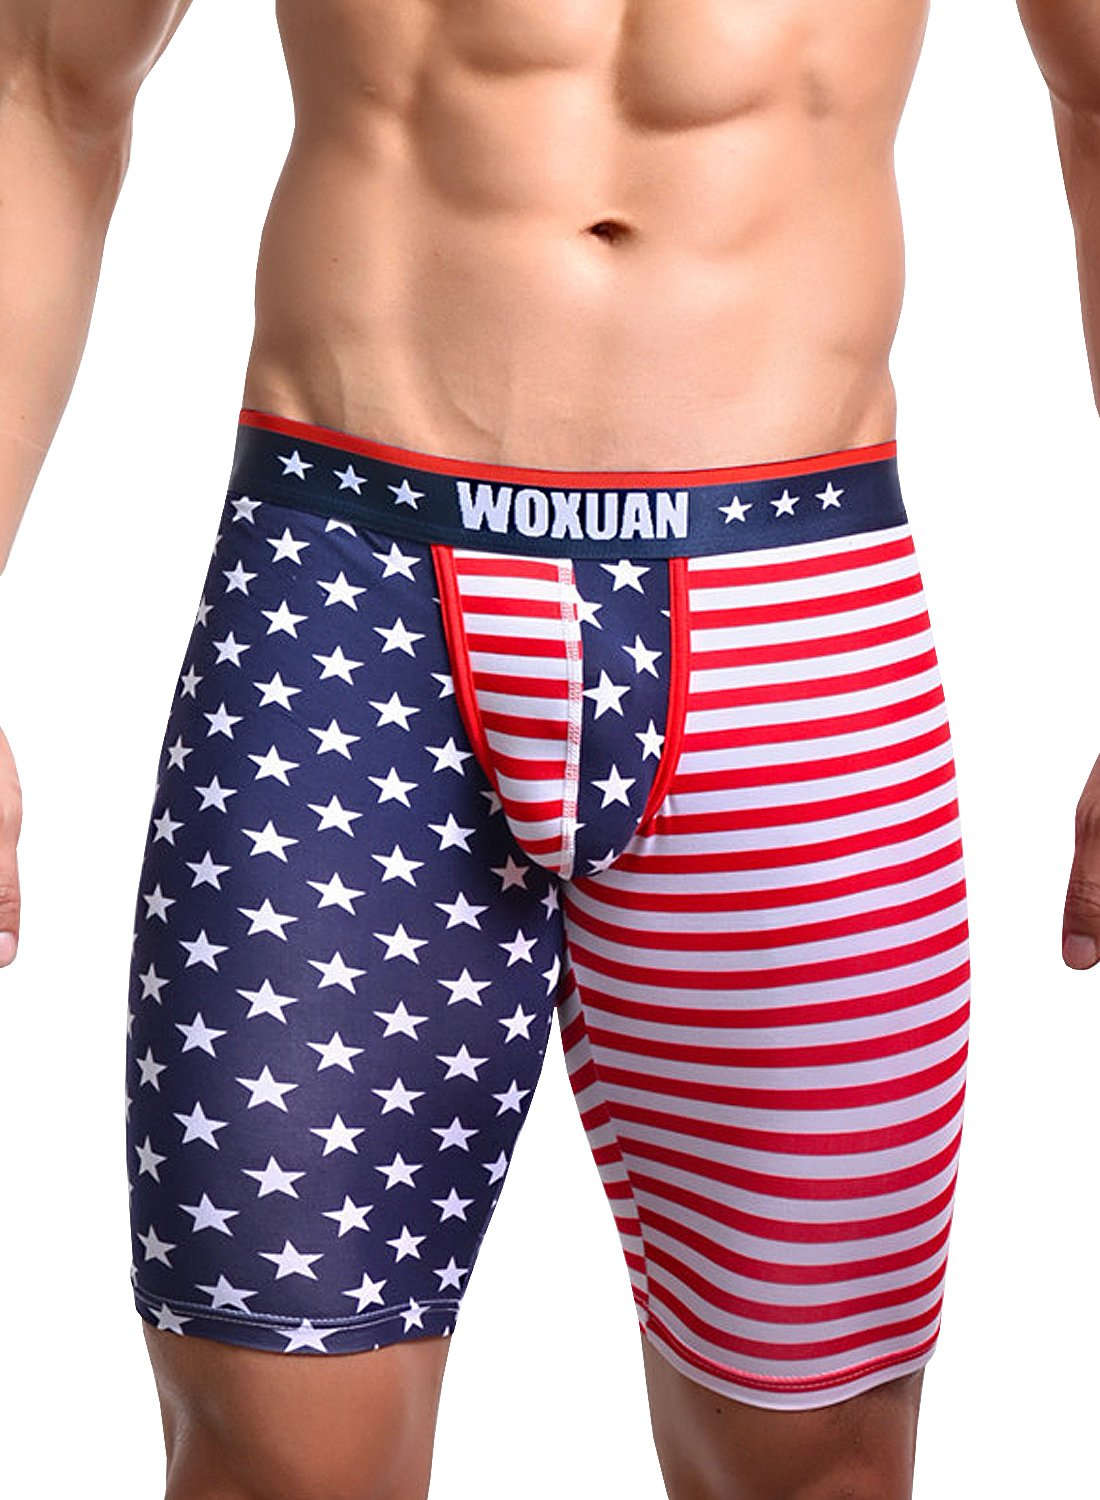 Men¡¯s American Flag Compression Shorts Running Workout Gym Yoga Workout Tight Shorts (Size,XL)